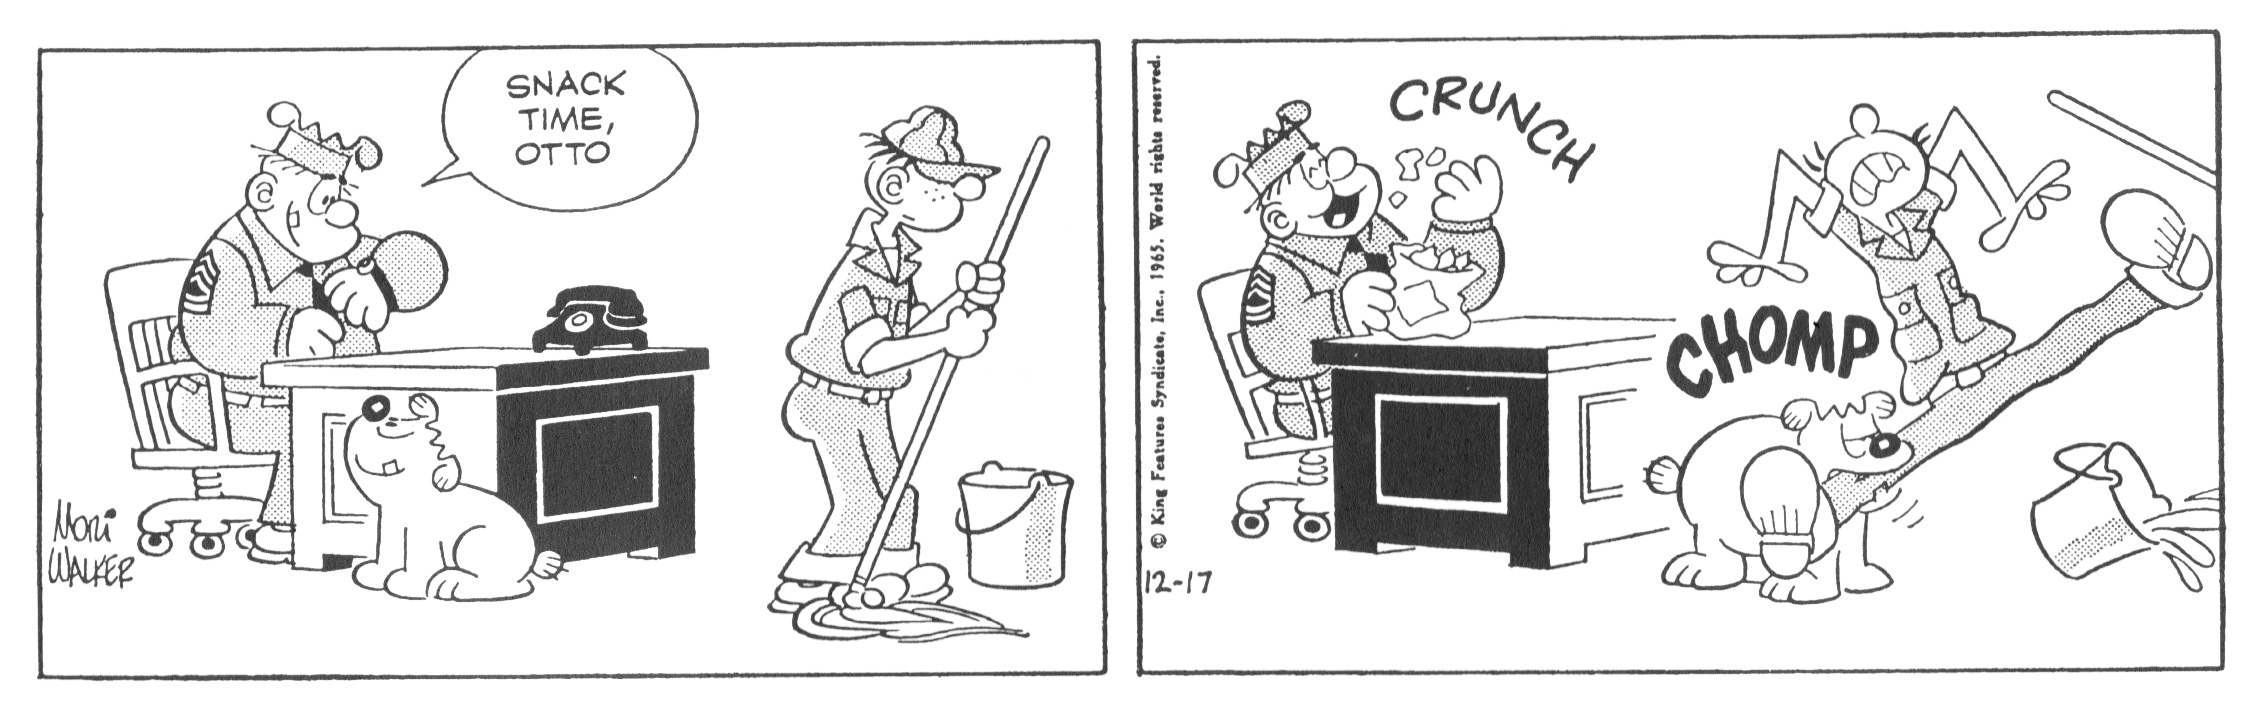 Beetle Bailey daily strip, December 17, 1965.